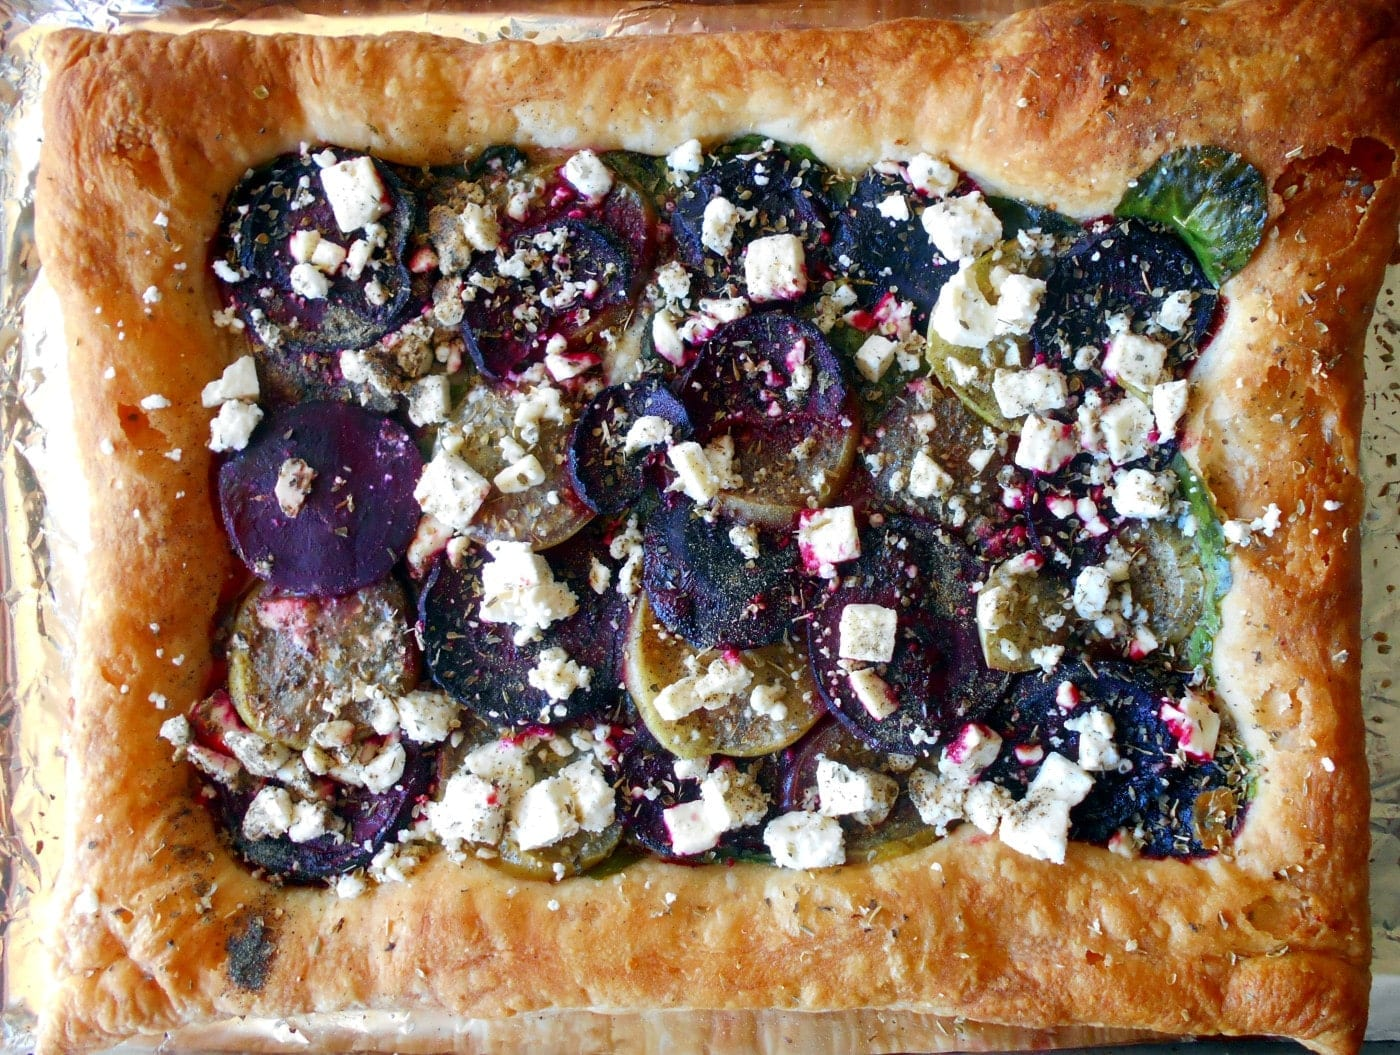 Overhead view of a wholly baked puff pastry beet tart that is oven roasted